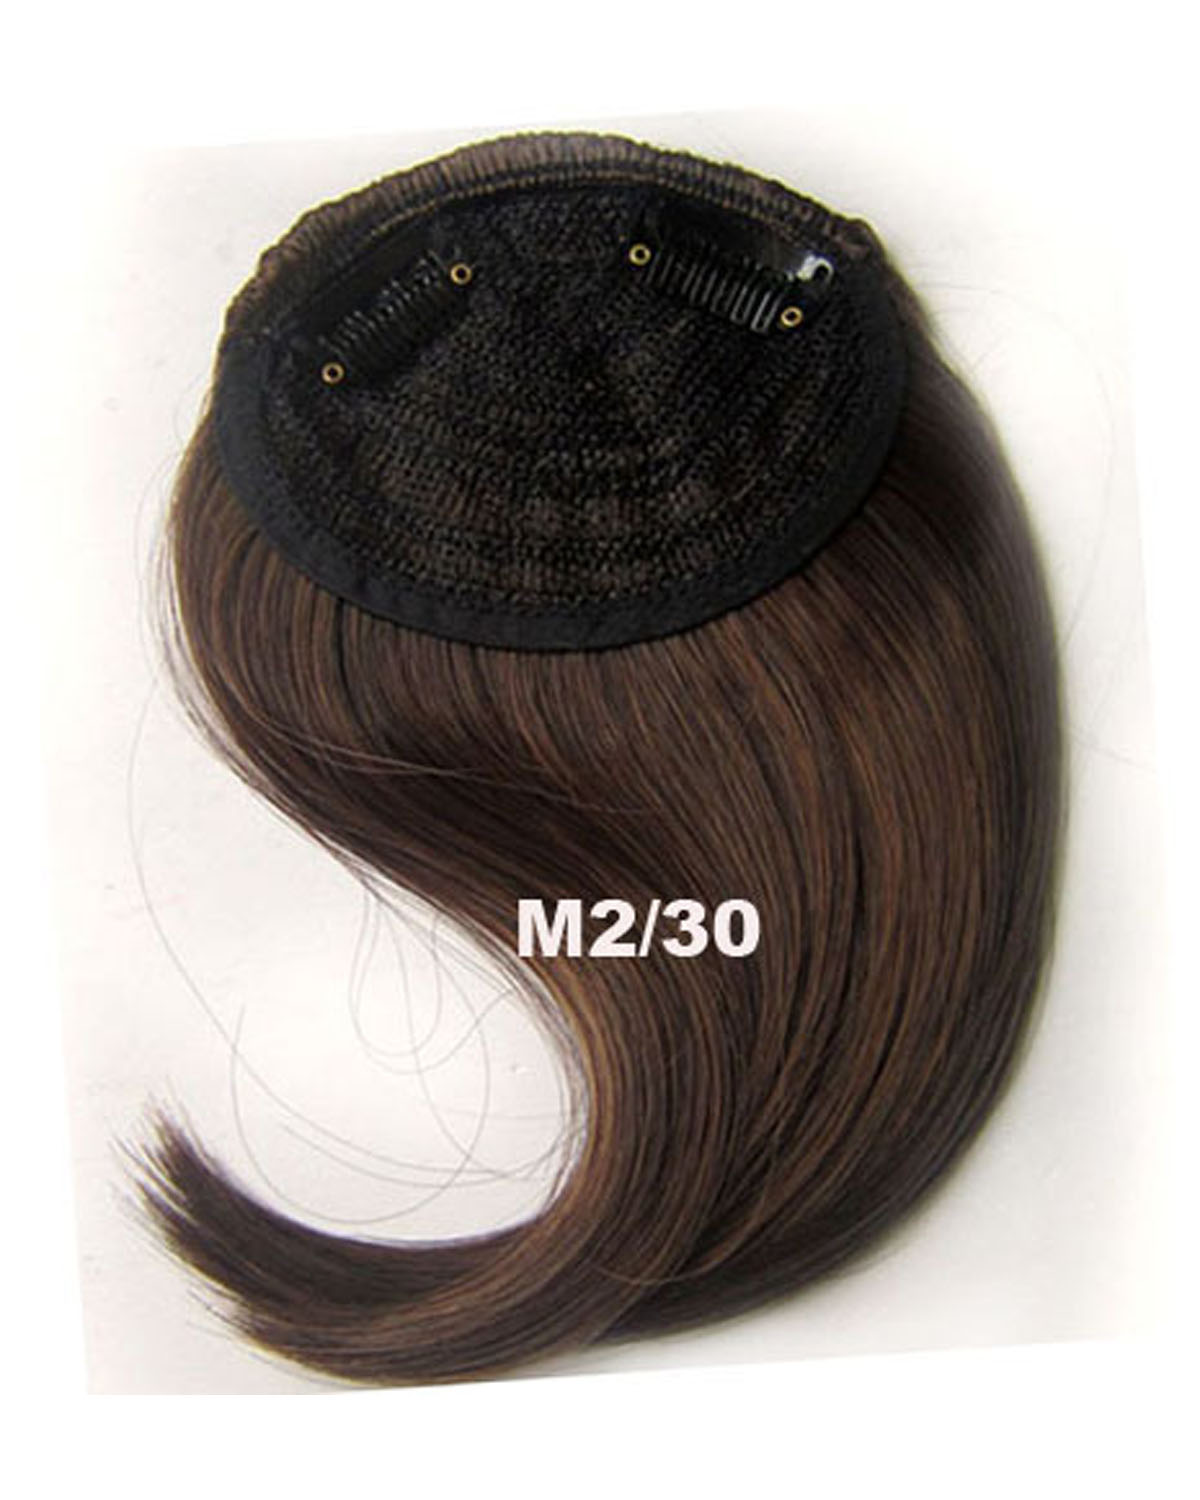 Girls Adjustable Straight Short Bangs Clip in Synthetic Hair Extension Fringe Bangs HairpieceM2/30#